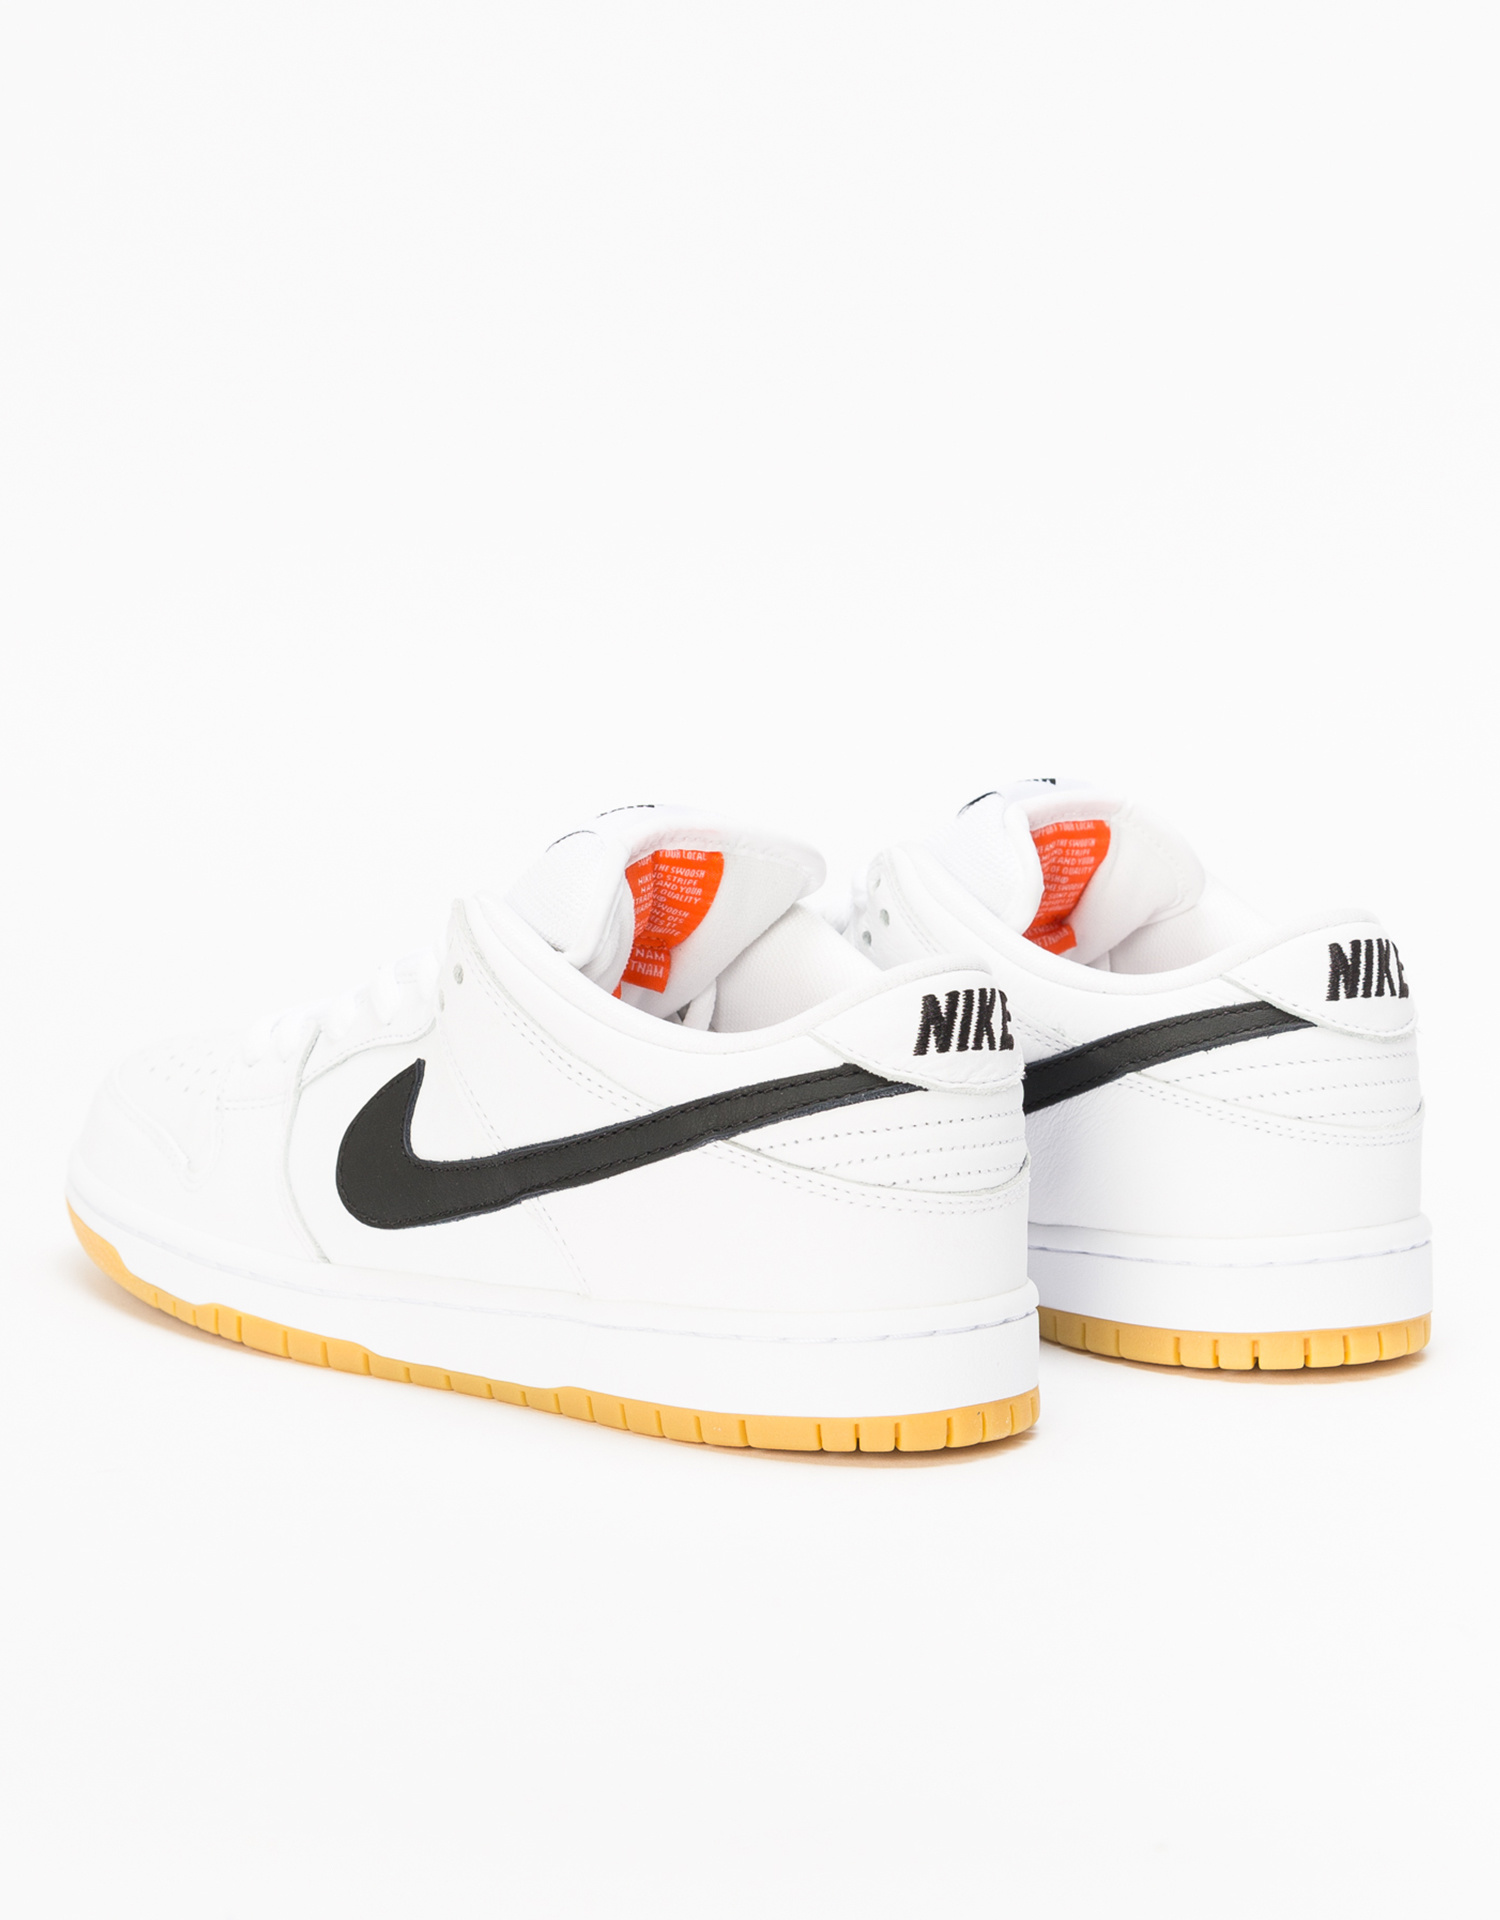 separation shoes 18a0f 1cb10 ... Nike SB Dunk Low Pro Iso Orange Label white black-white-gum light ...